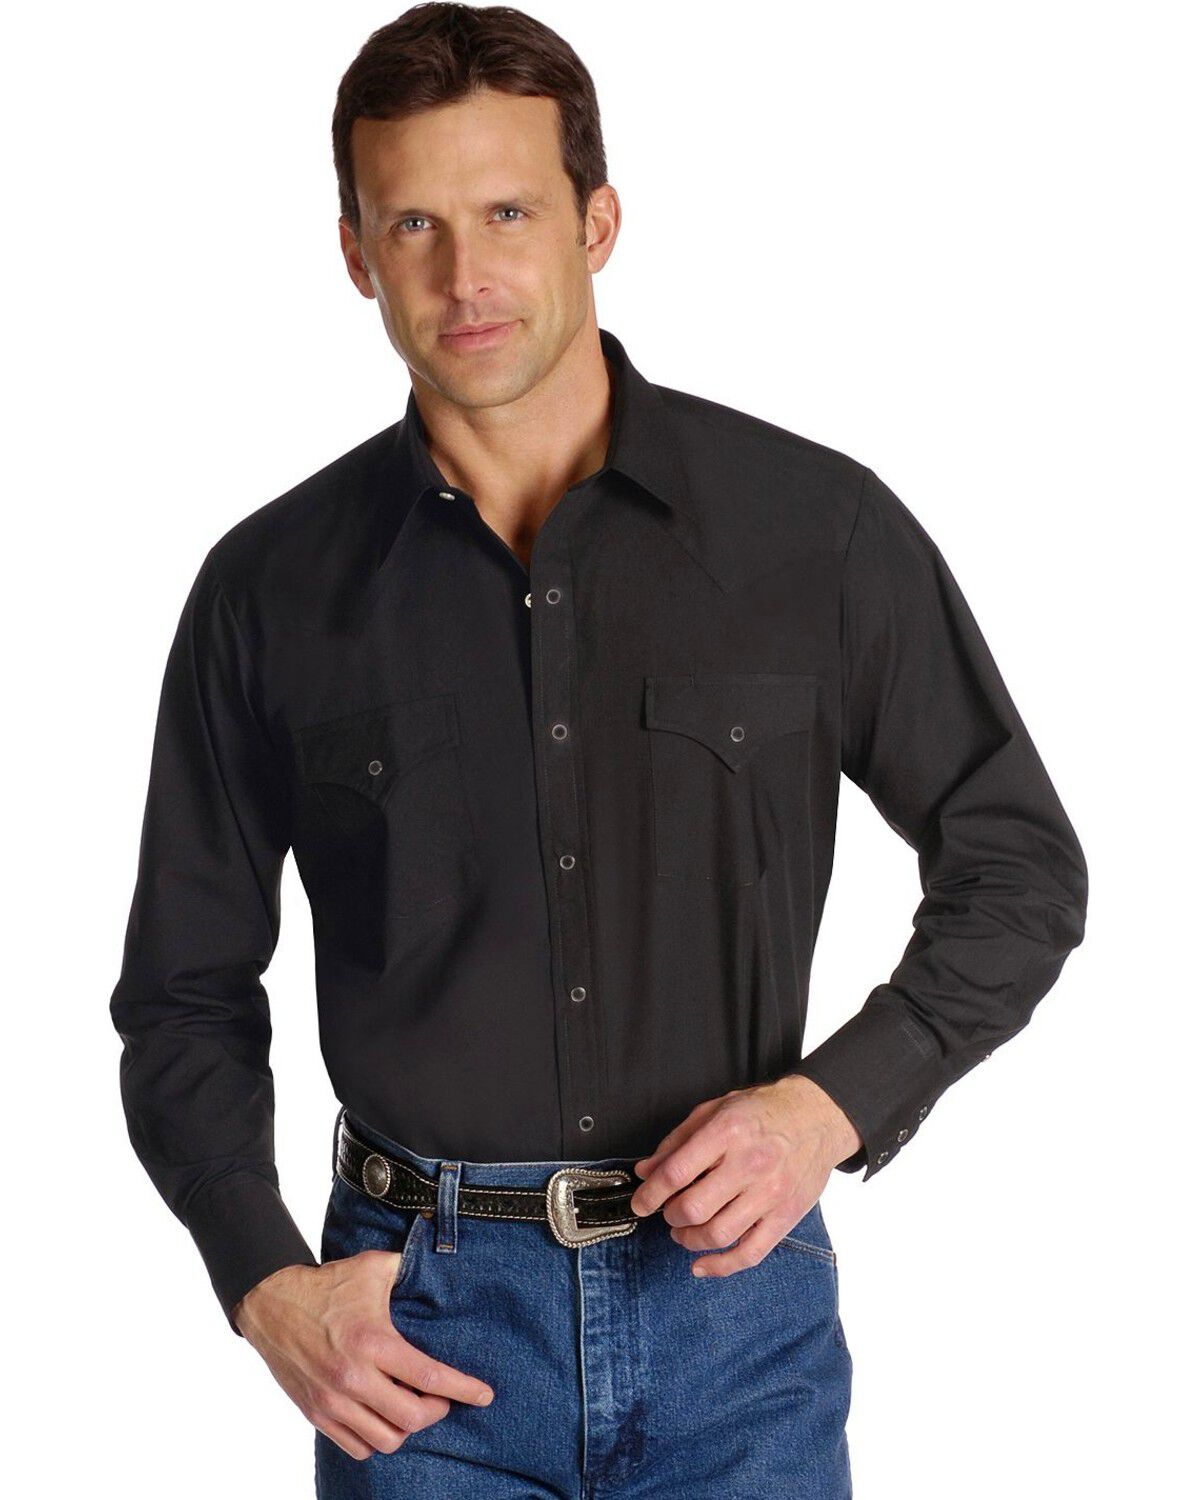 Black dress jeans mens xl tall shirts